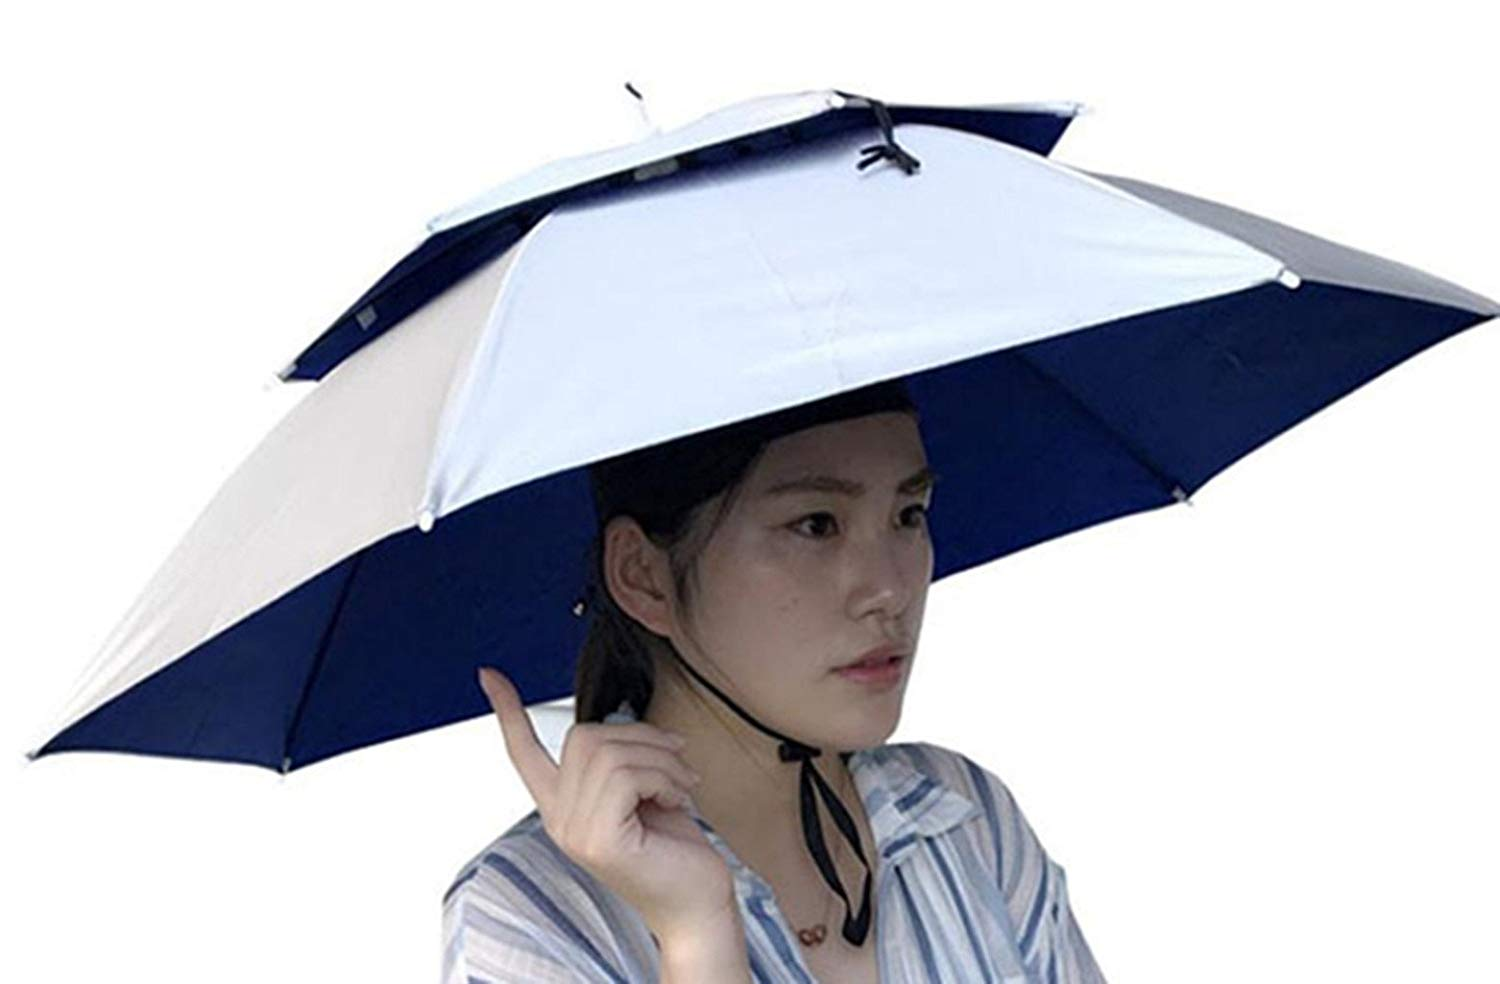 adbb586066f65 Get Quotations · Double Layer Umbrella Hat for Women and Men